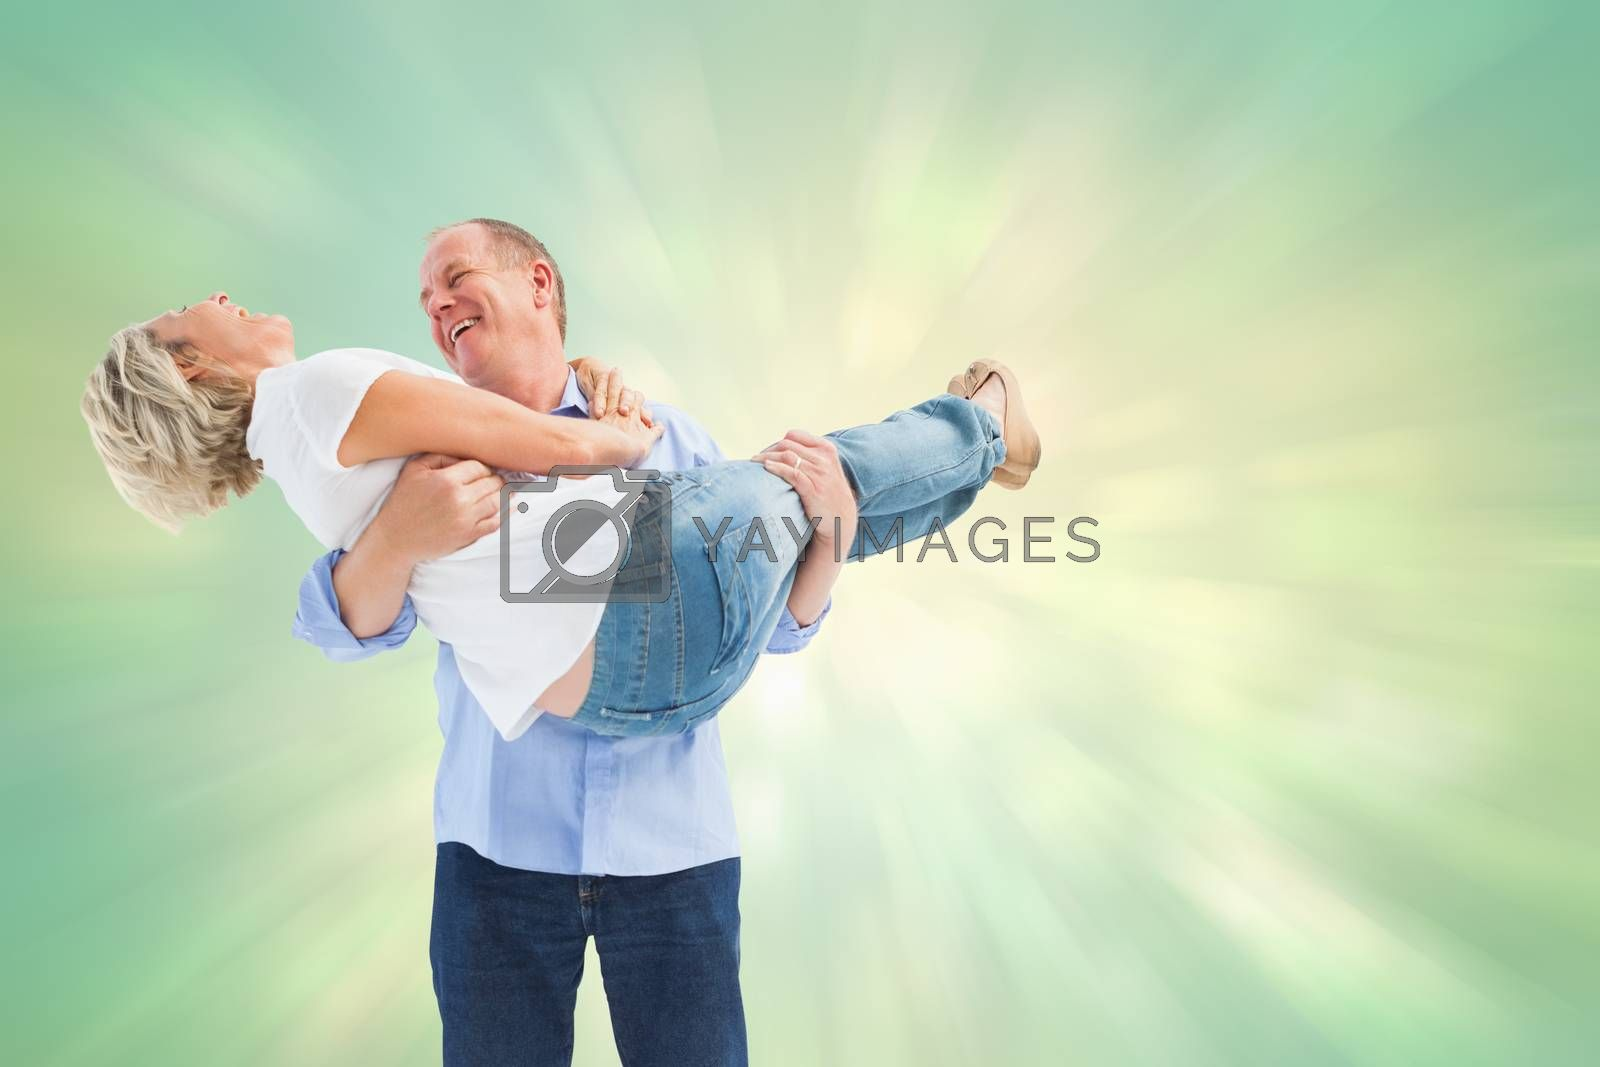 Mature man carrying his laughing partner against green abstract light spot design